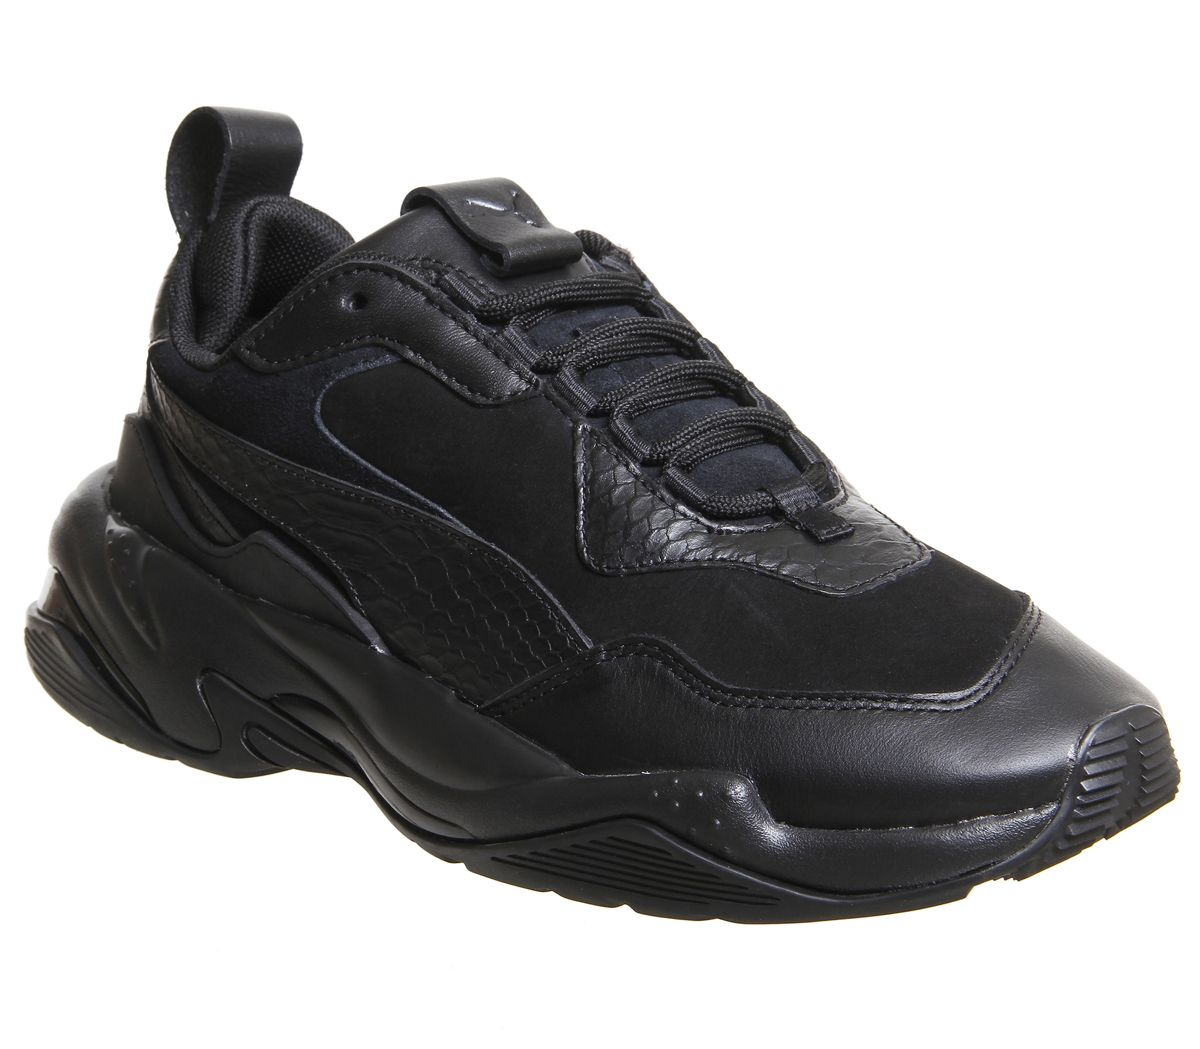 7c22fb1ecb Puma Thunder Desert Trainers Puma Black - His trainers